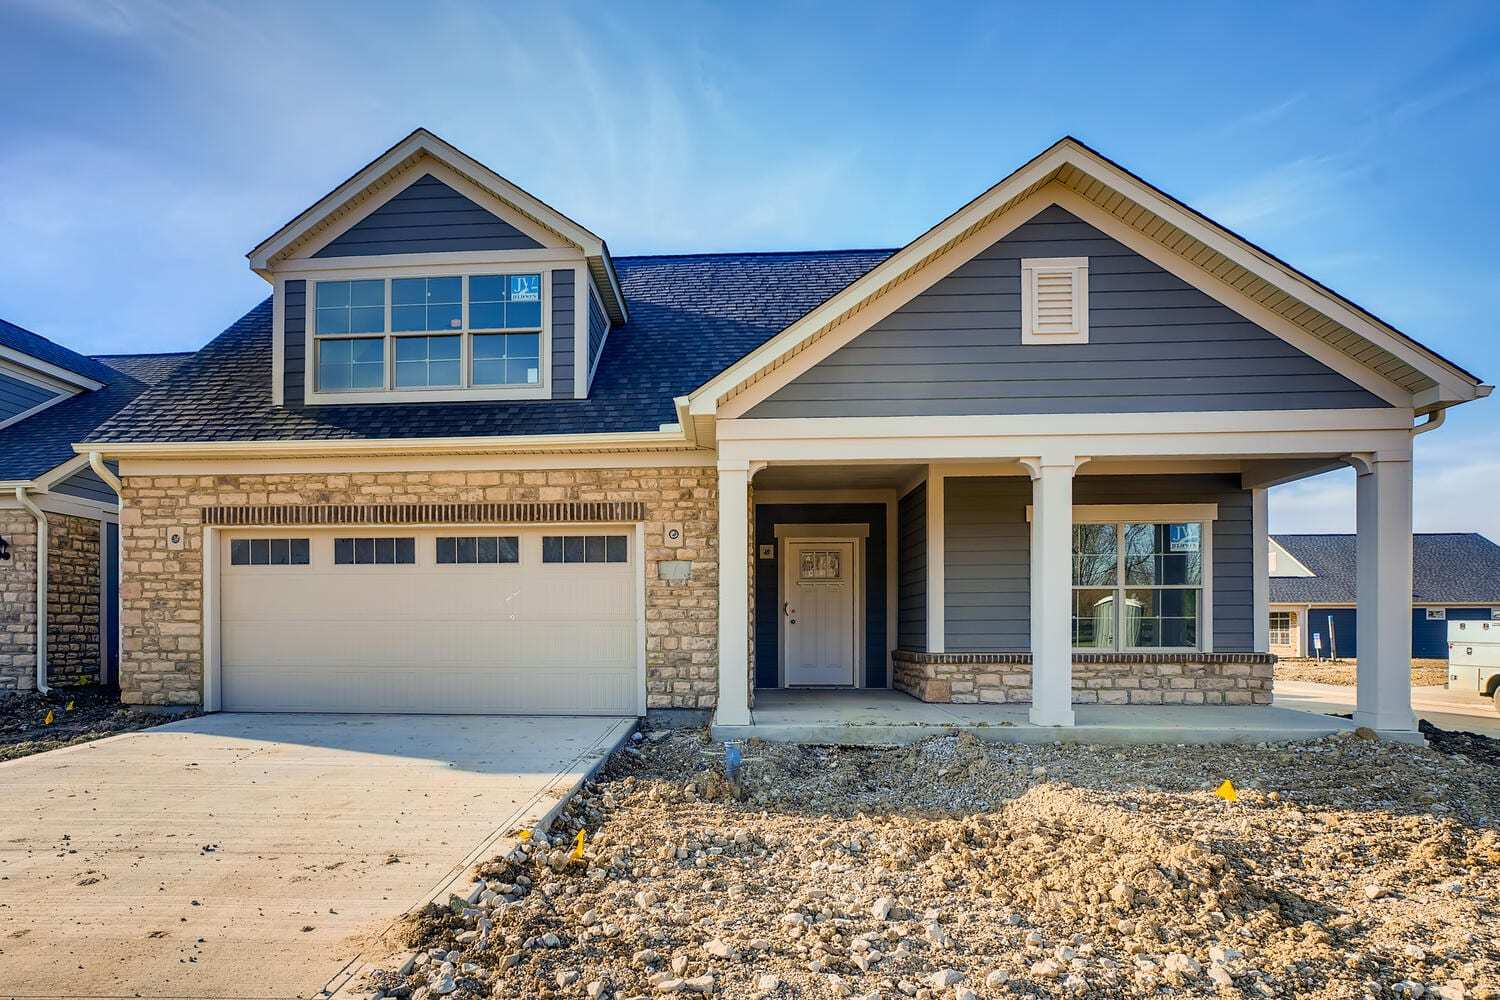 6475 Trinity Knoll Landing-large-001-001-Exterior Front-1500x1000-72dpi